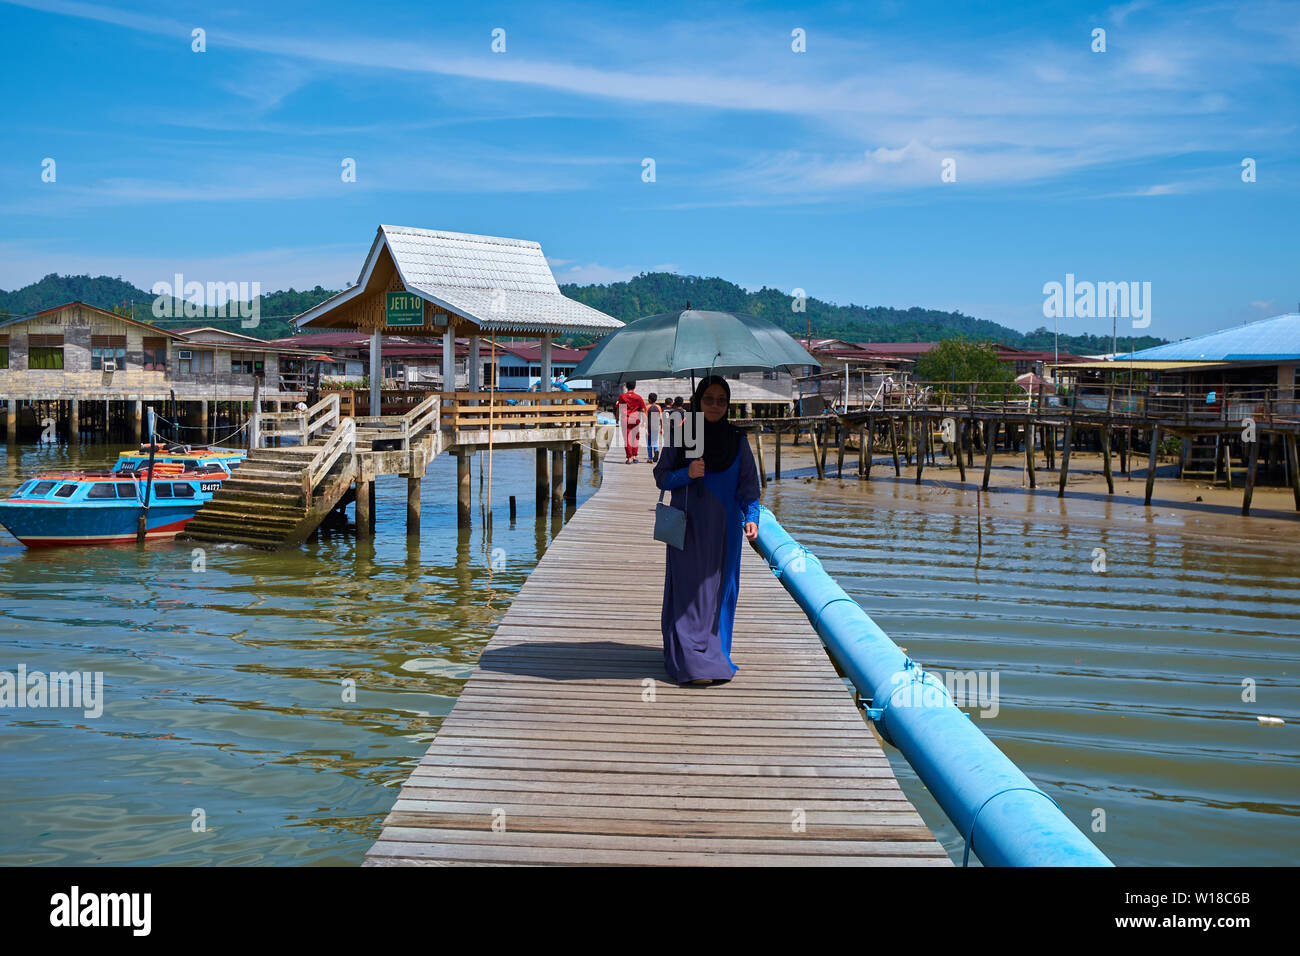 People wallking along one of the main wood paths leading into the water stilt village Kampong Ayer in Bandar Seri Begawan,Brunei. - Stock Image